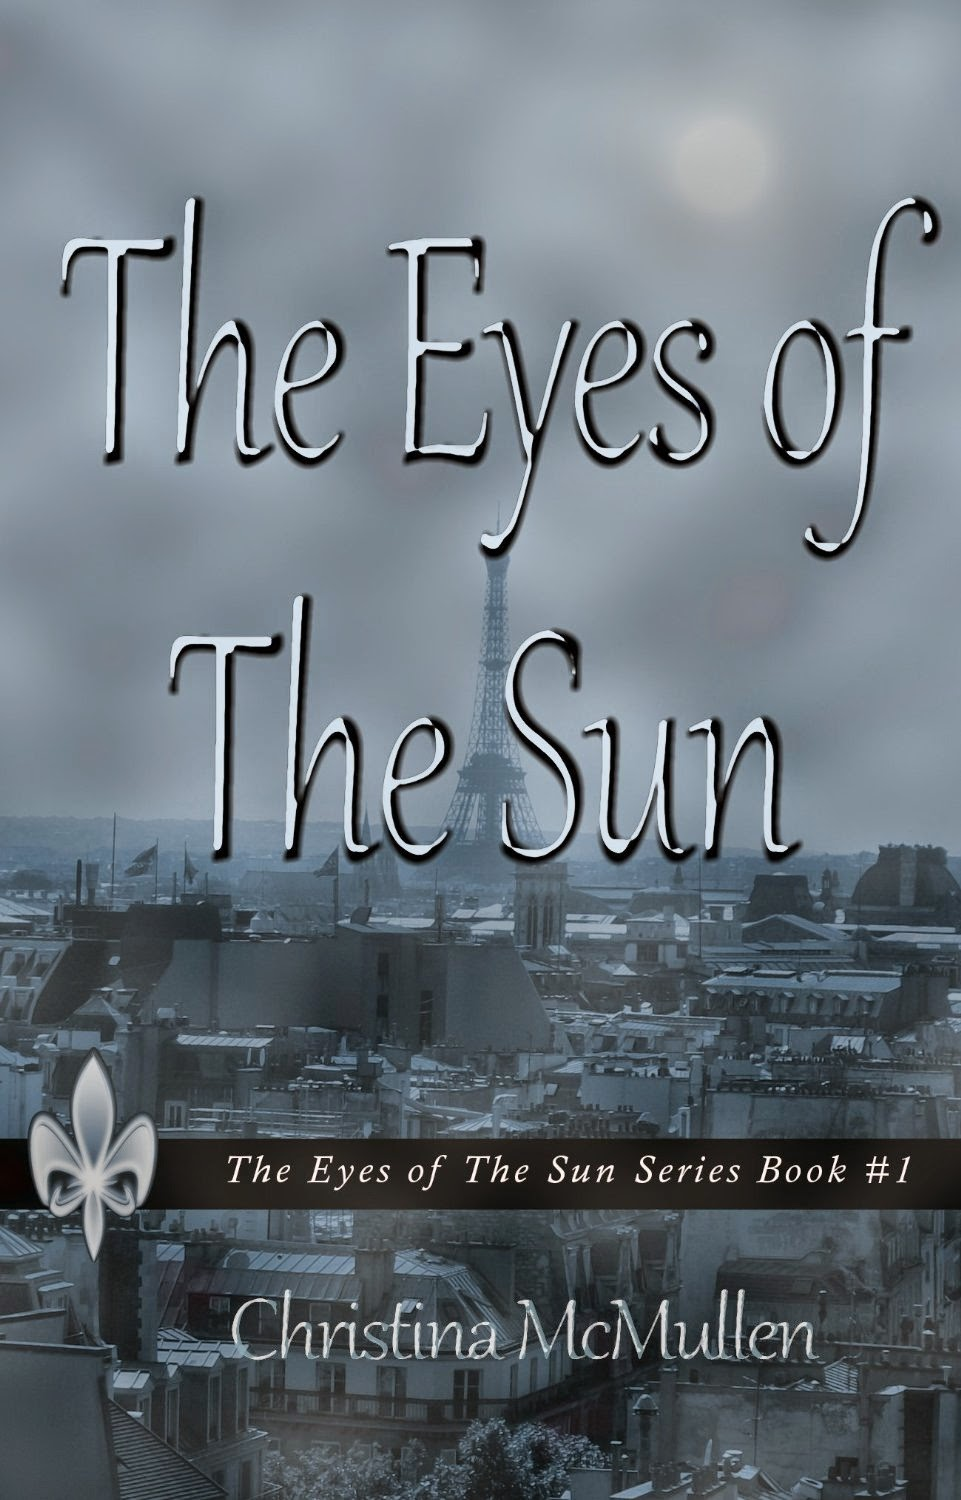 http://www.amazon.com/Eyes-Sun-Book-ebook/dp/B00A7L7GJ0